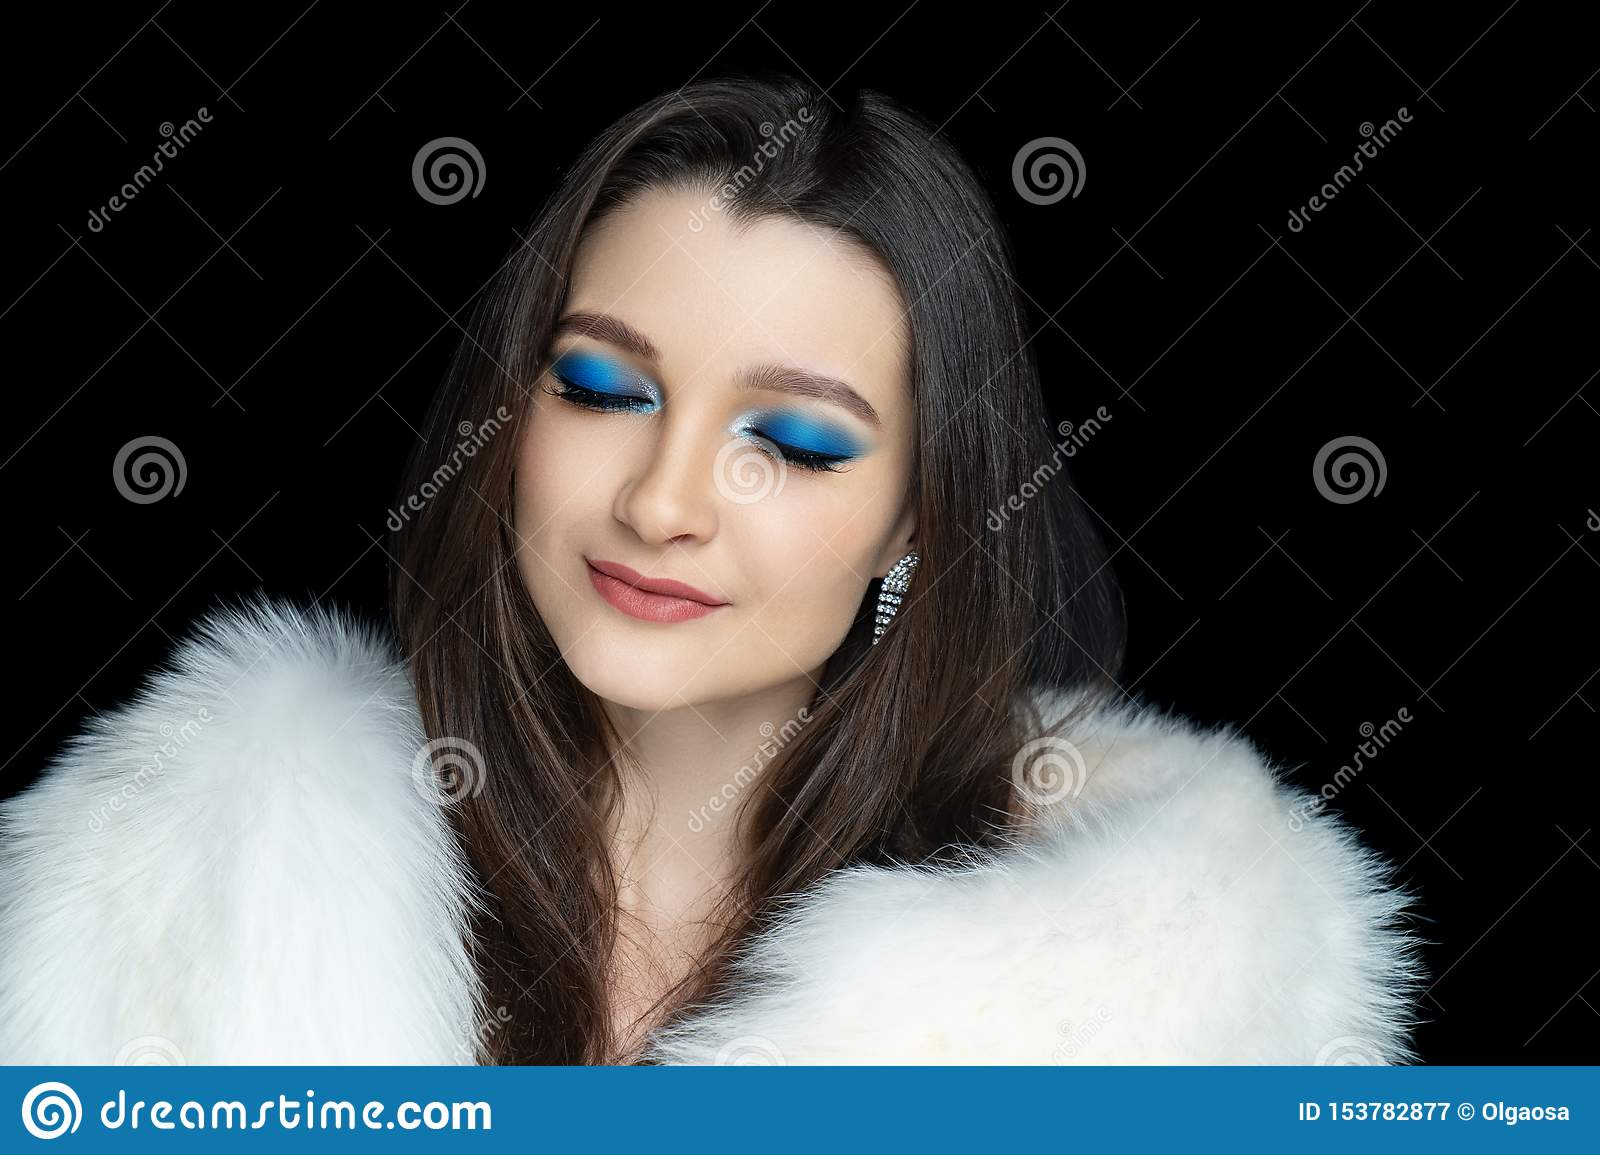 Make up glossy blue eyeshadows closed eyes